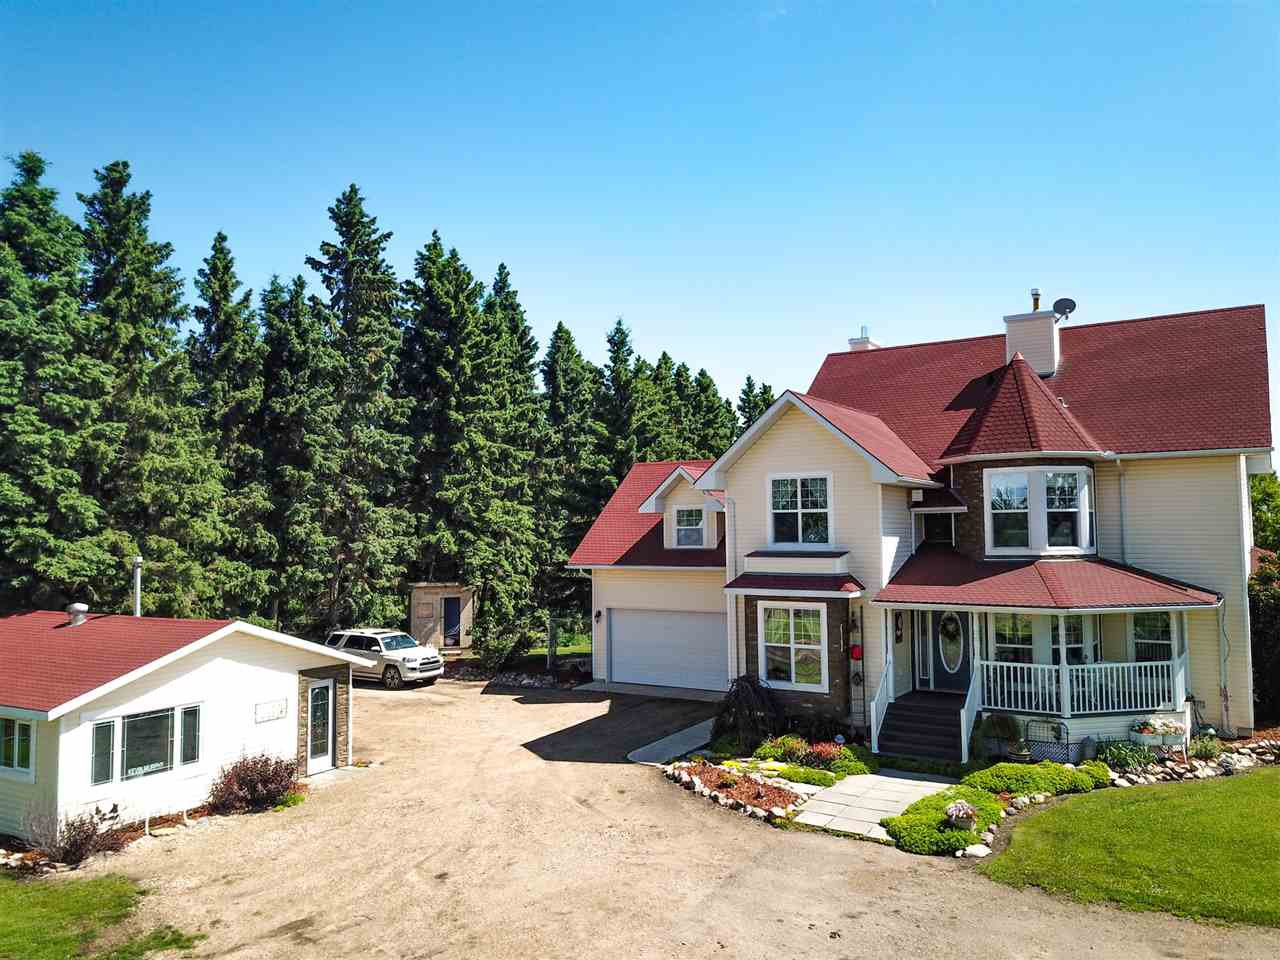 Main Photo: 464004 Hwy 795: Rural Wetaskiwin County House for sale : MLS®# E4205198